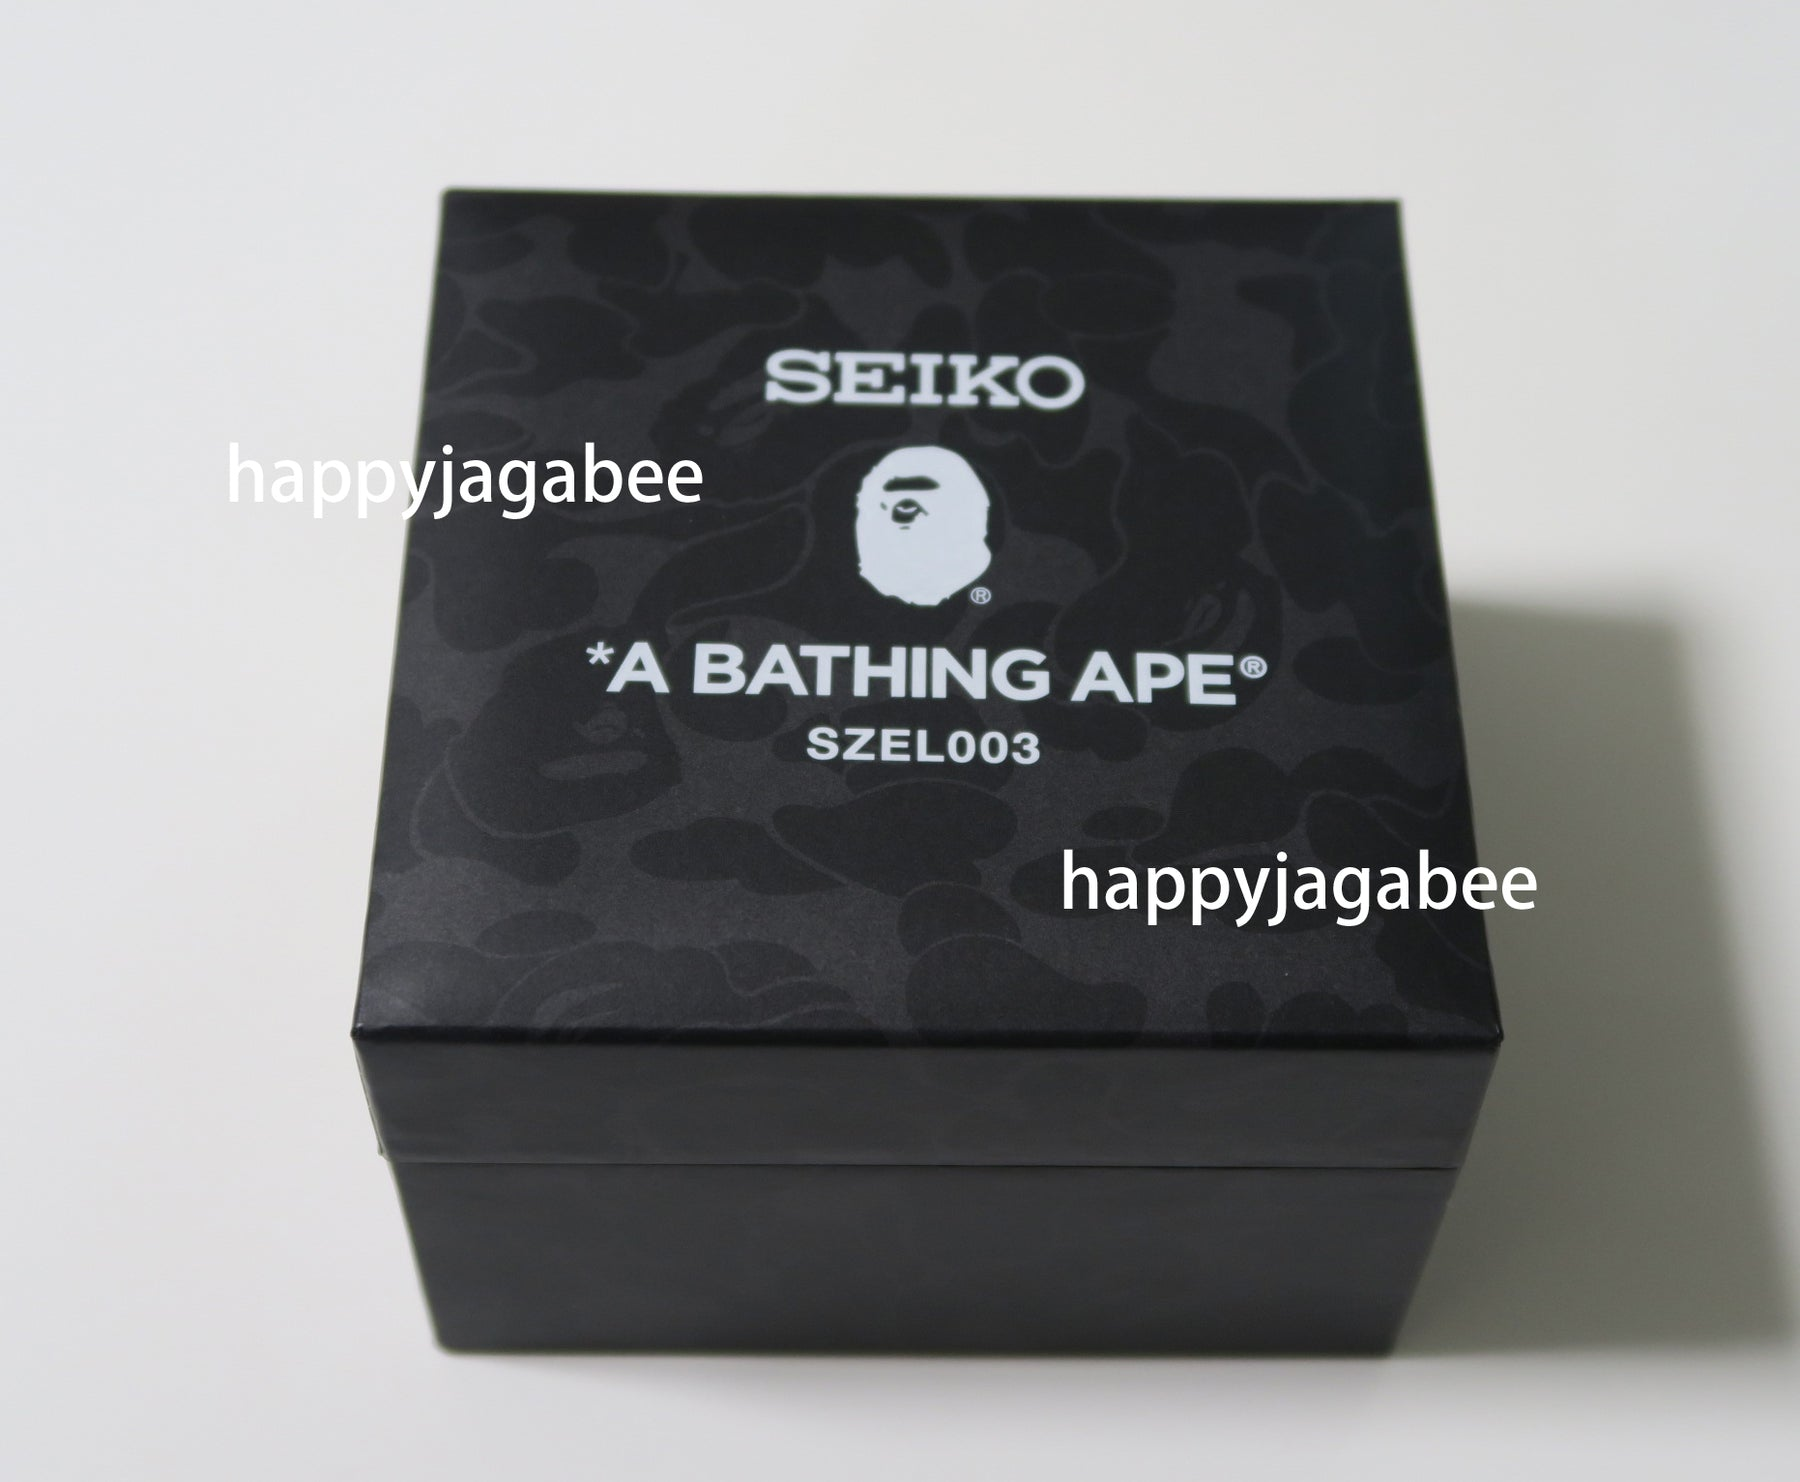 bc8316c5dc ... A BATHING APE SEIKO X BAPE MECHANICAL DIVERS WATCH JAPAN LIMITED  EDITION ...